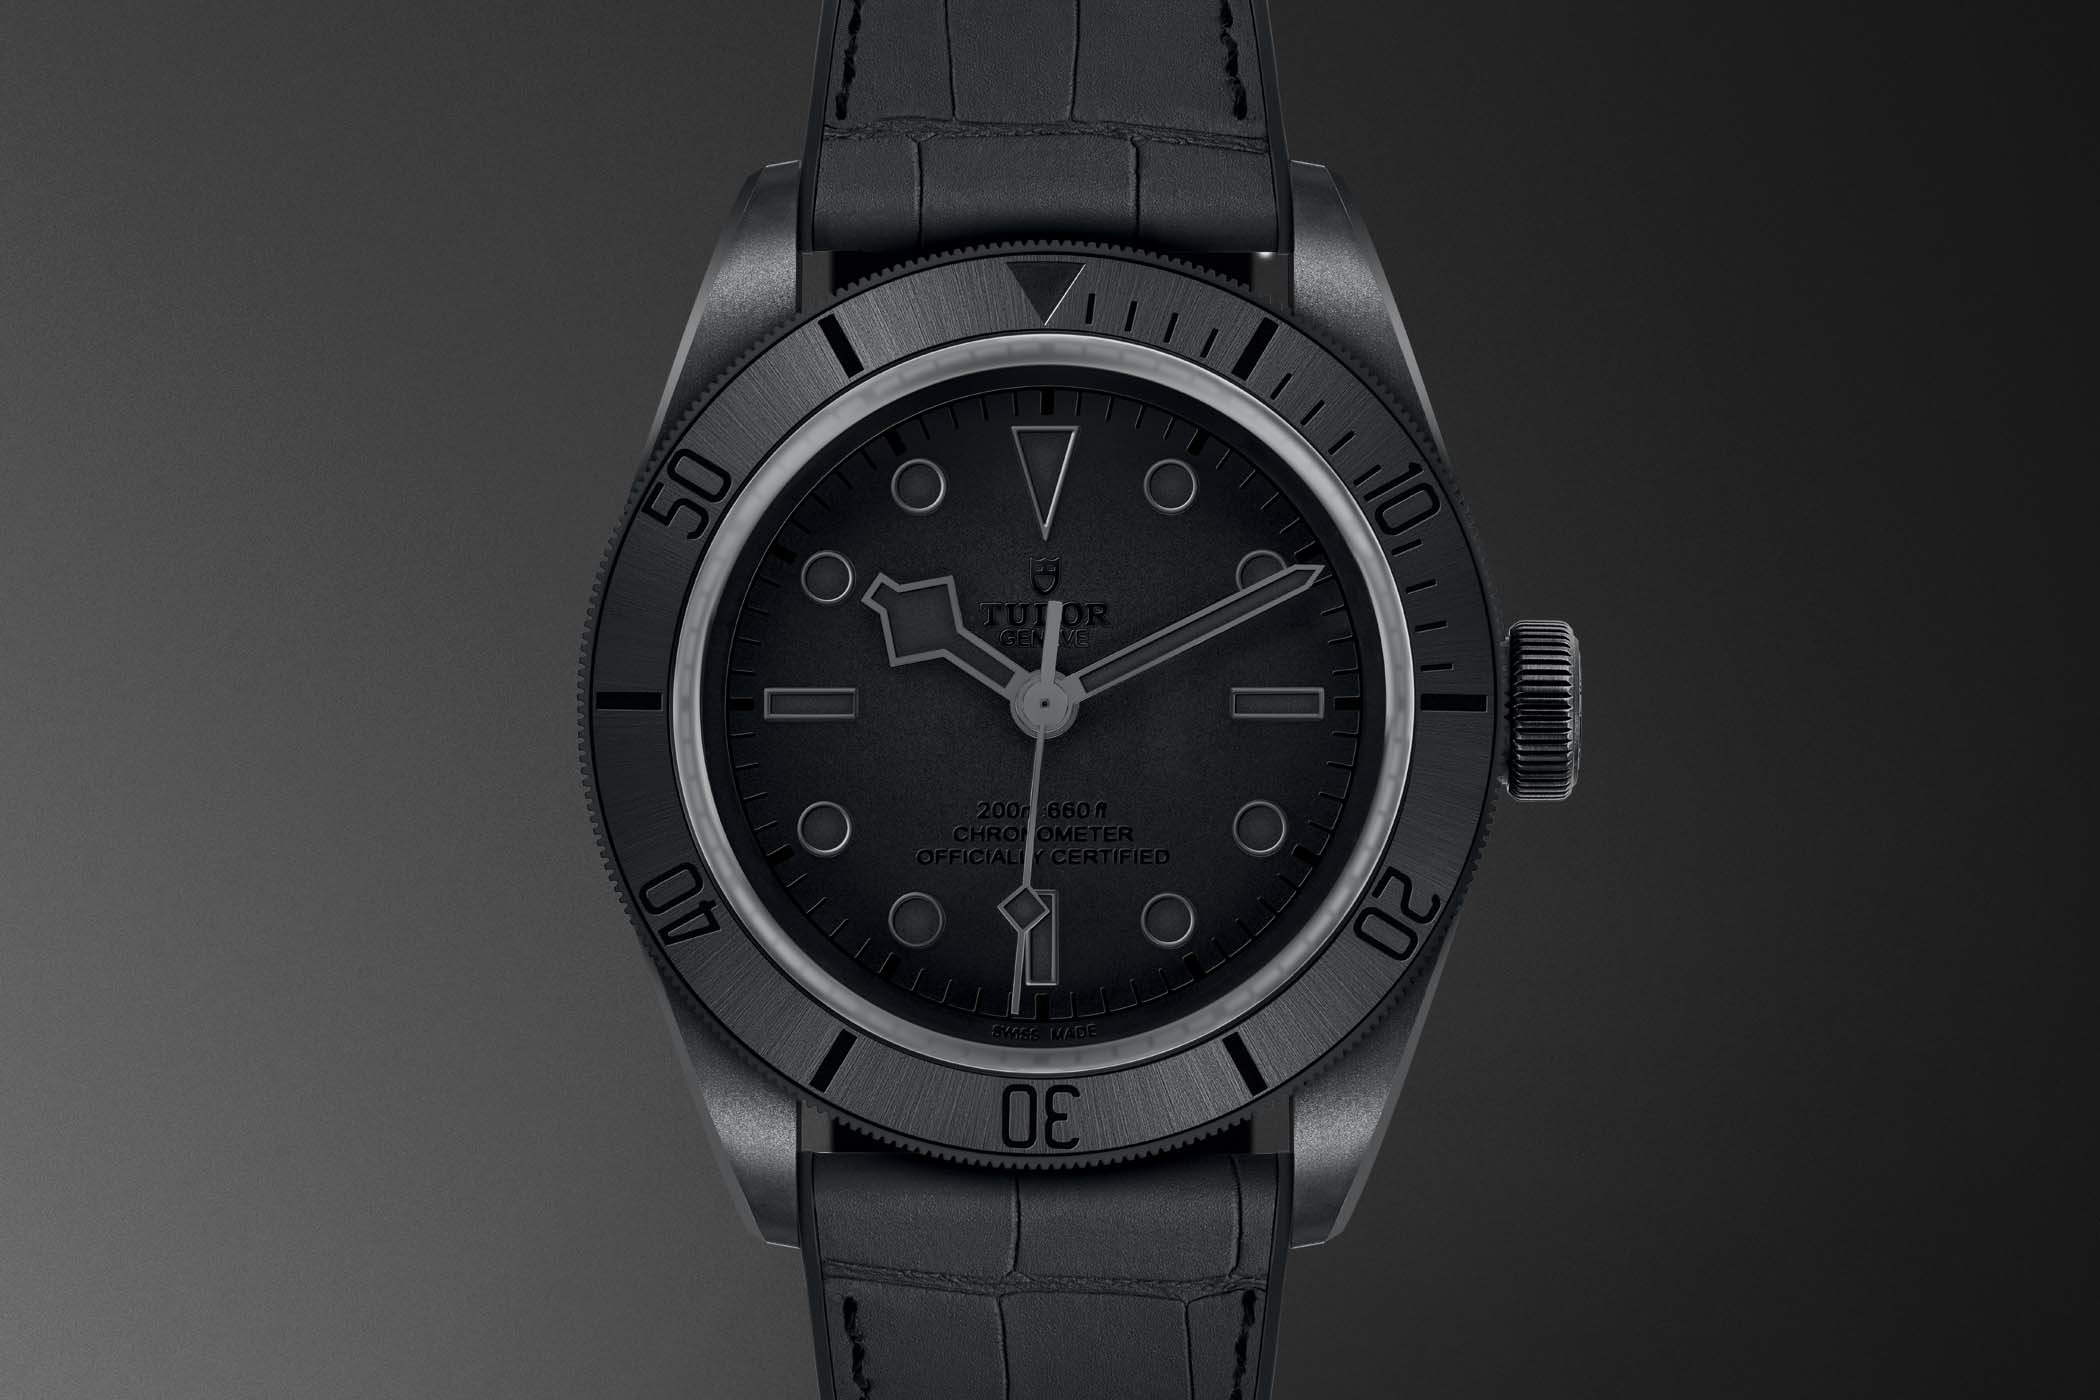 Only Watch 2019 - Tudor Black Bay Ceramic One M7921_001CN